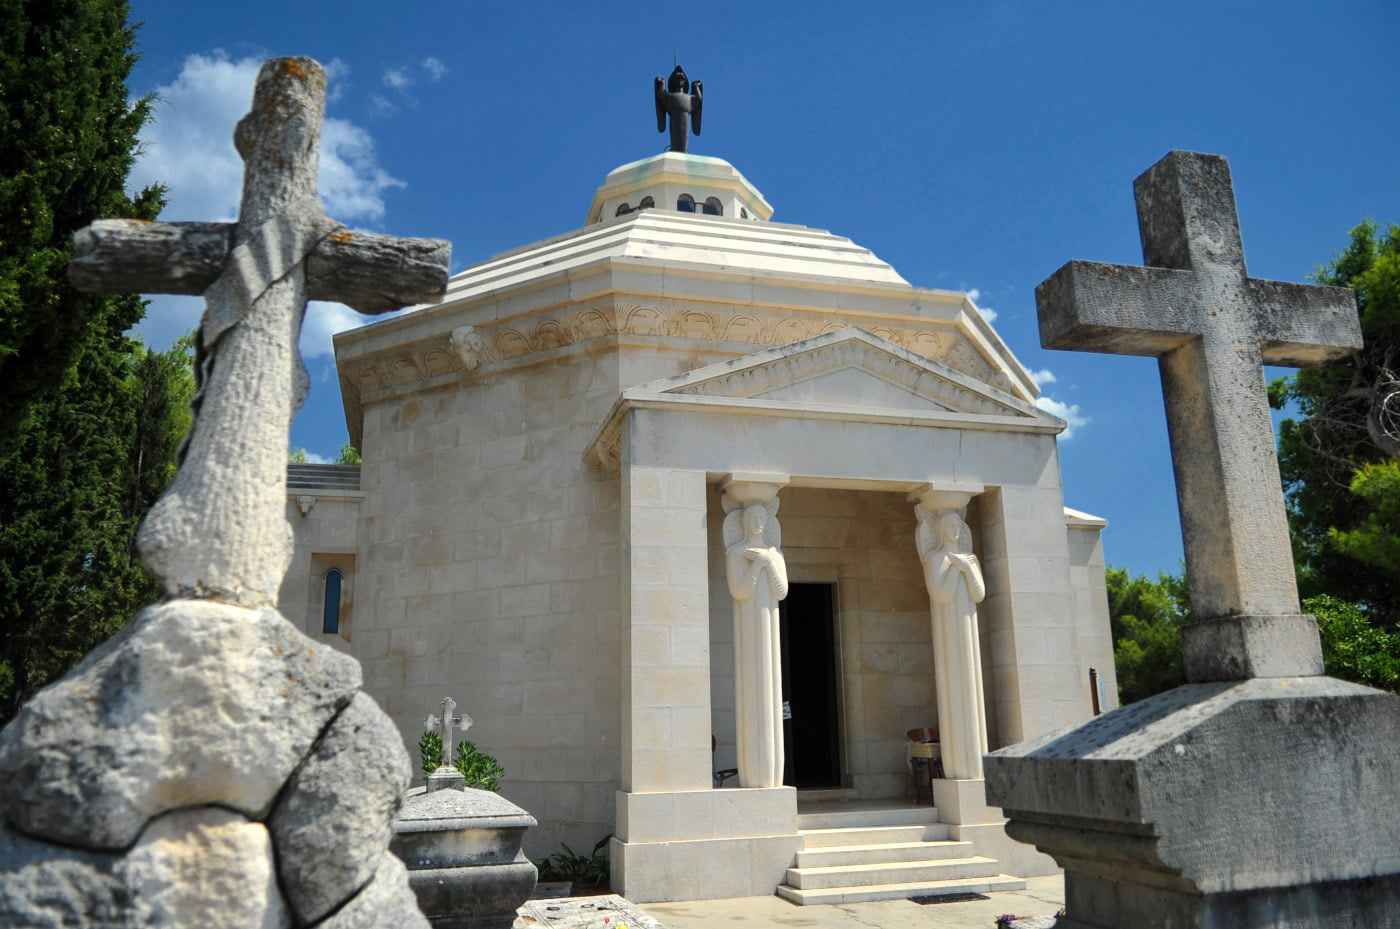 Racic Mausoleum in Town of Cavtat